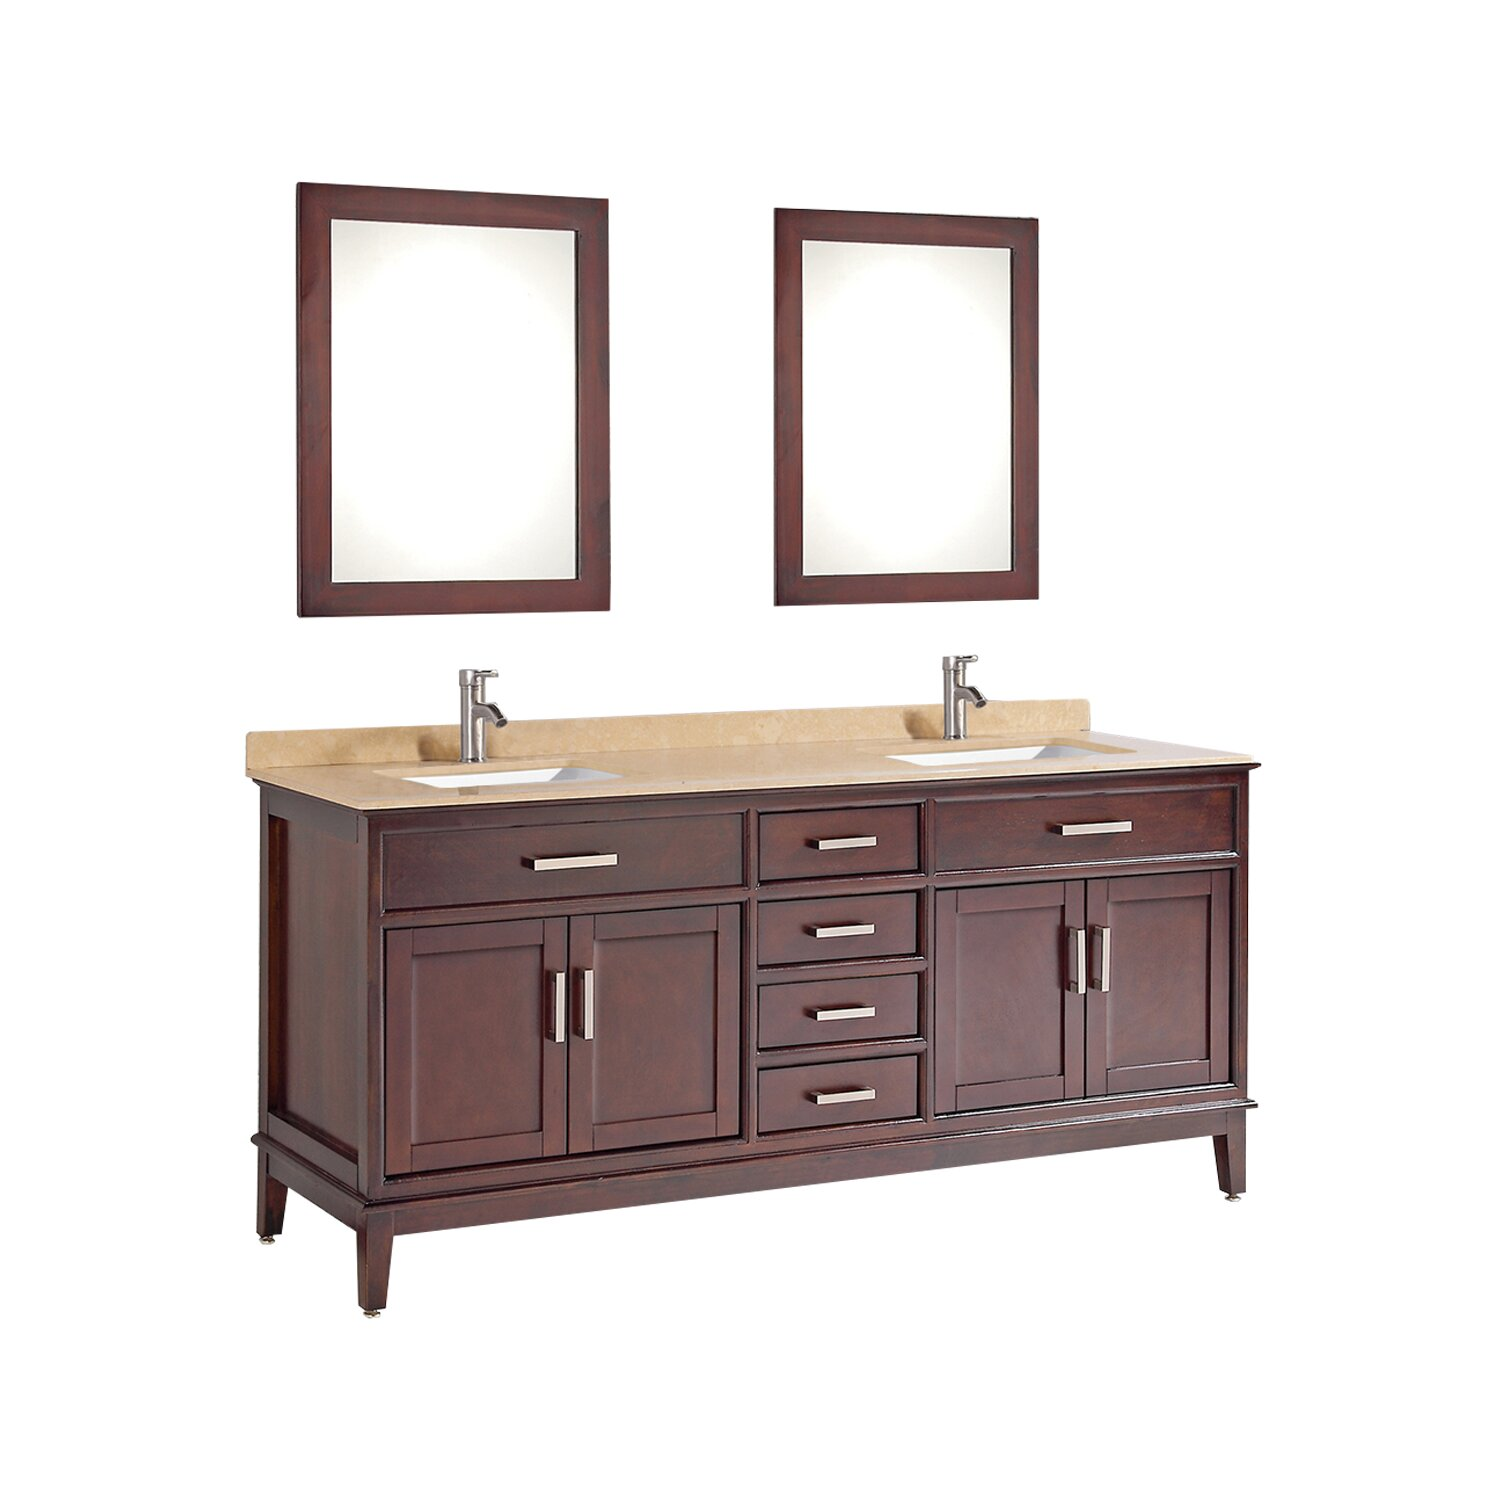 Mtdvanities sierra 59 8 double bathroom vanity set with for Mirrors for bathroom vanity